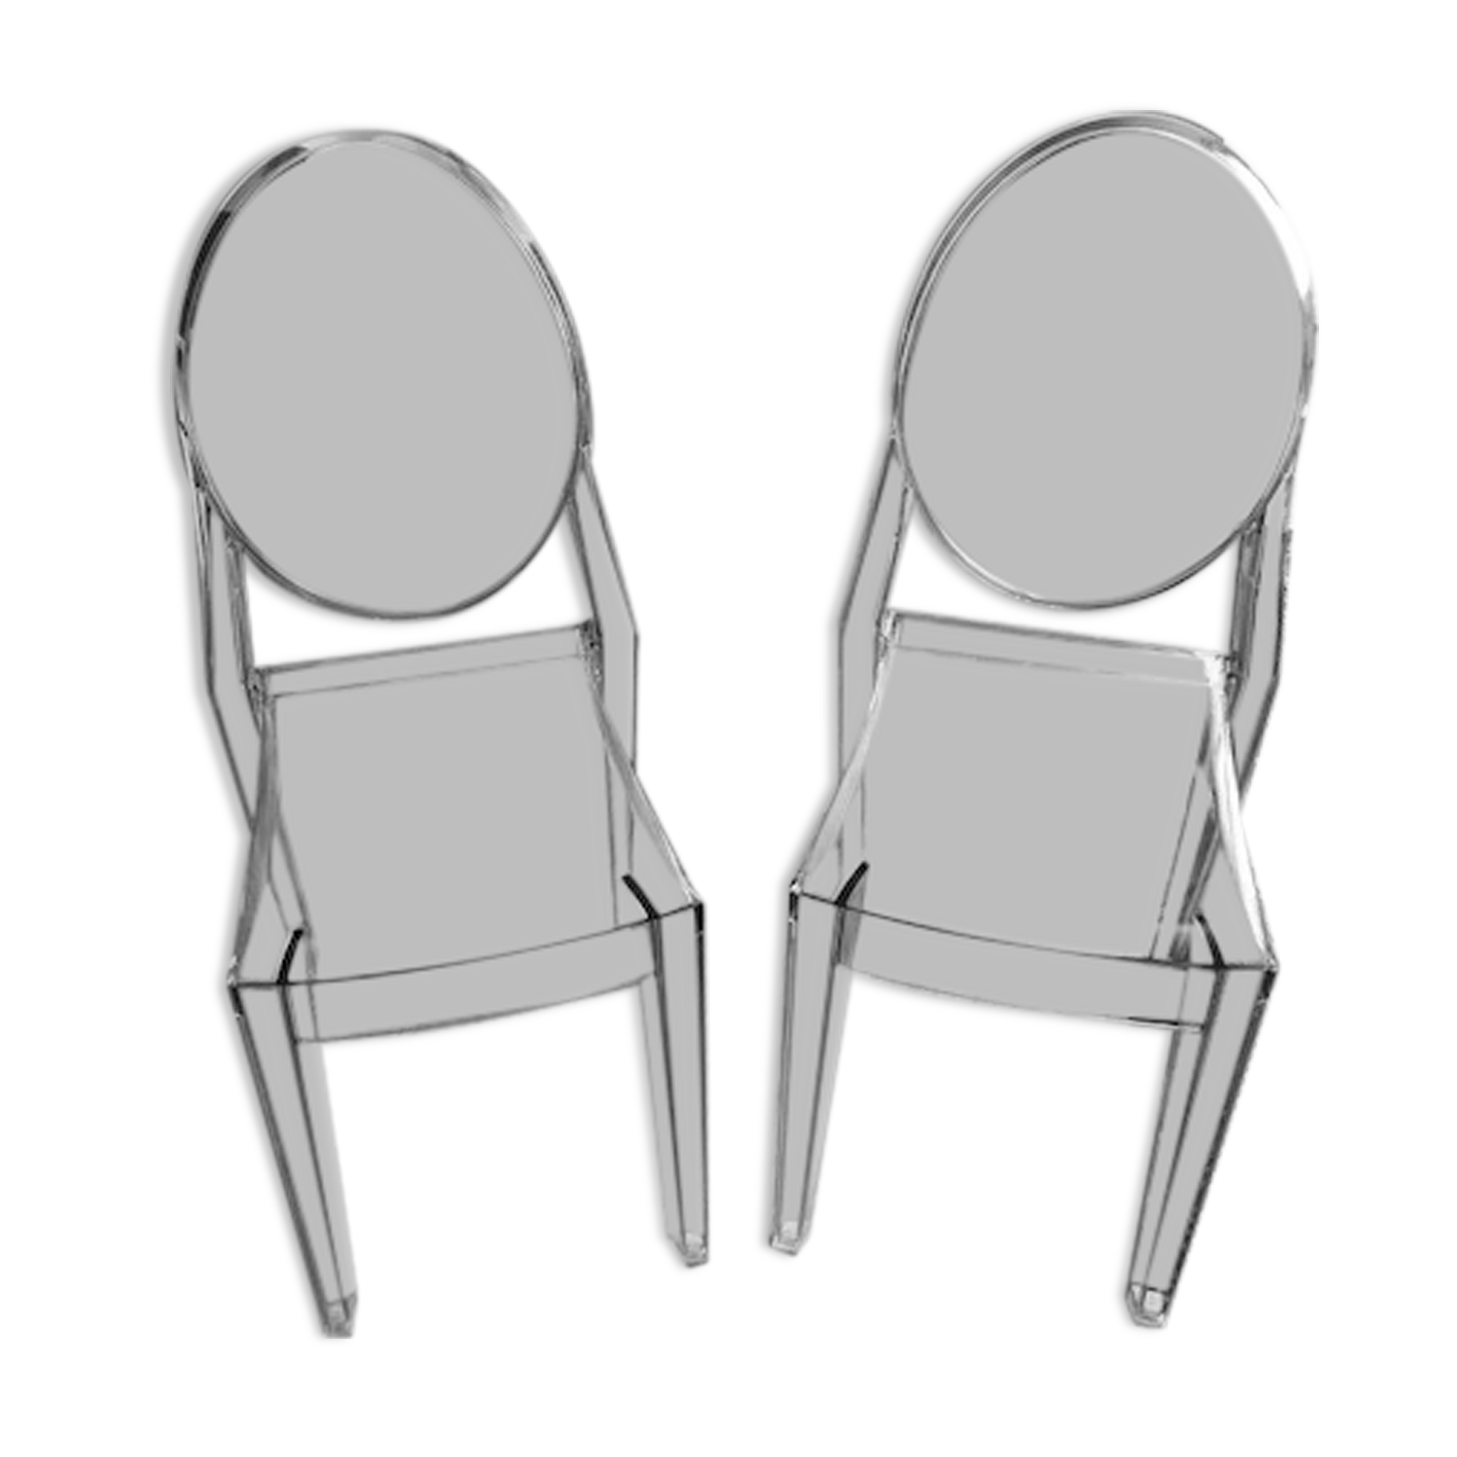 Chaises Victoria Ghost de Philippe Starck, édition Kartell